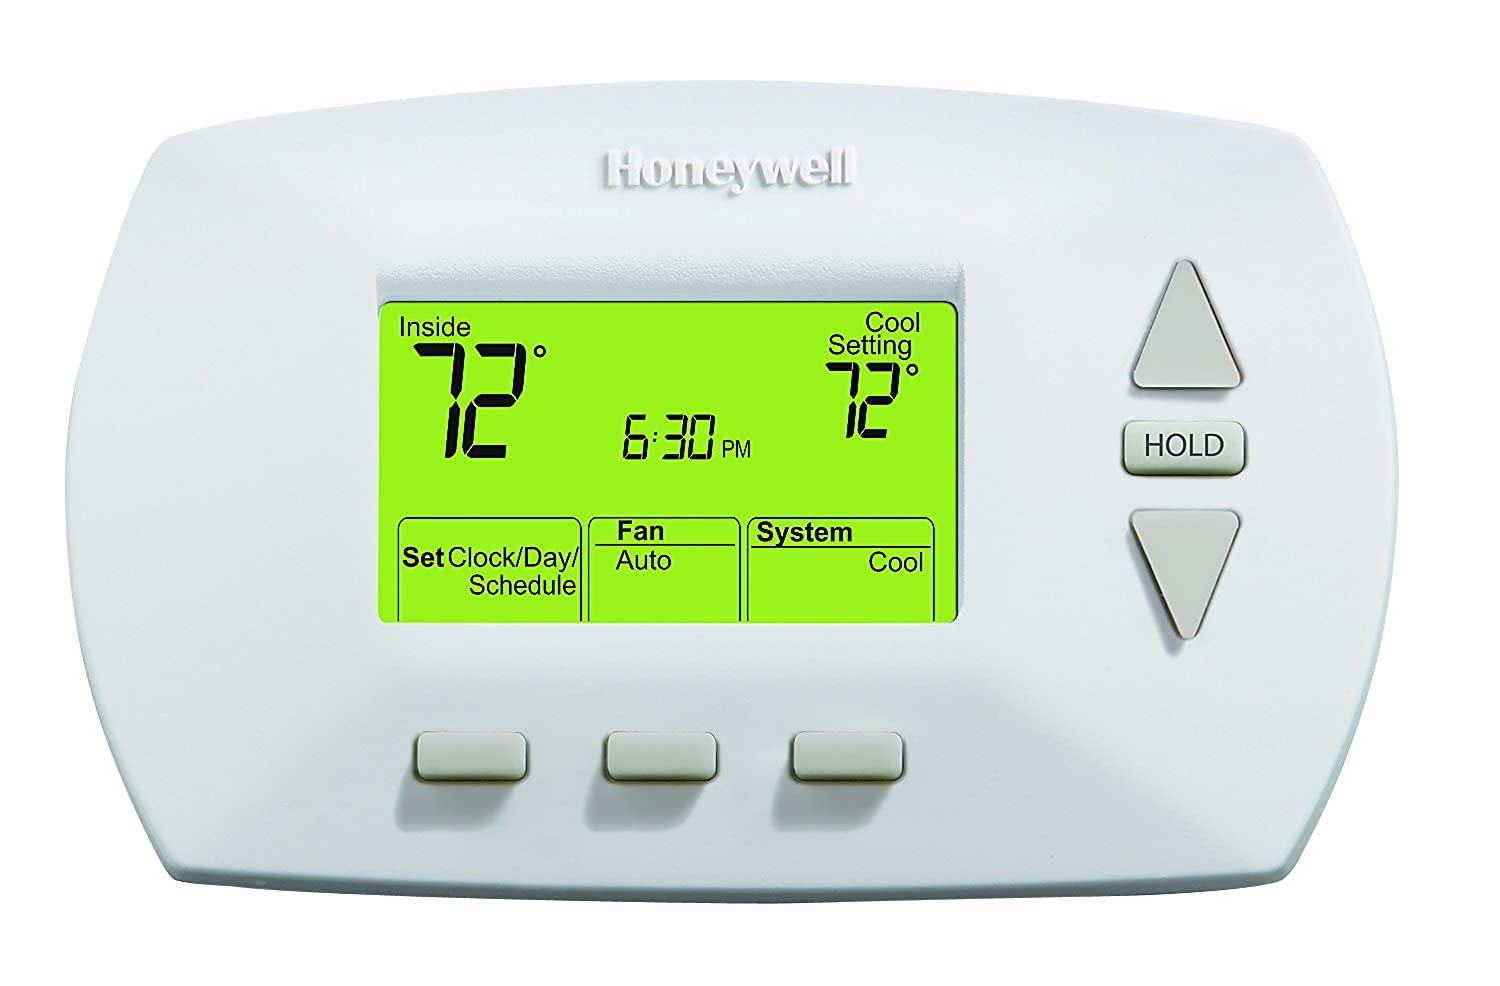 Honeywell Th6110d1005 Installation Manual User Guide That Troubleshooting Programmable Thermostat Amazon Com Rth6450d1009 E1 5 1 Day Rh